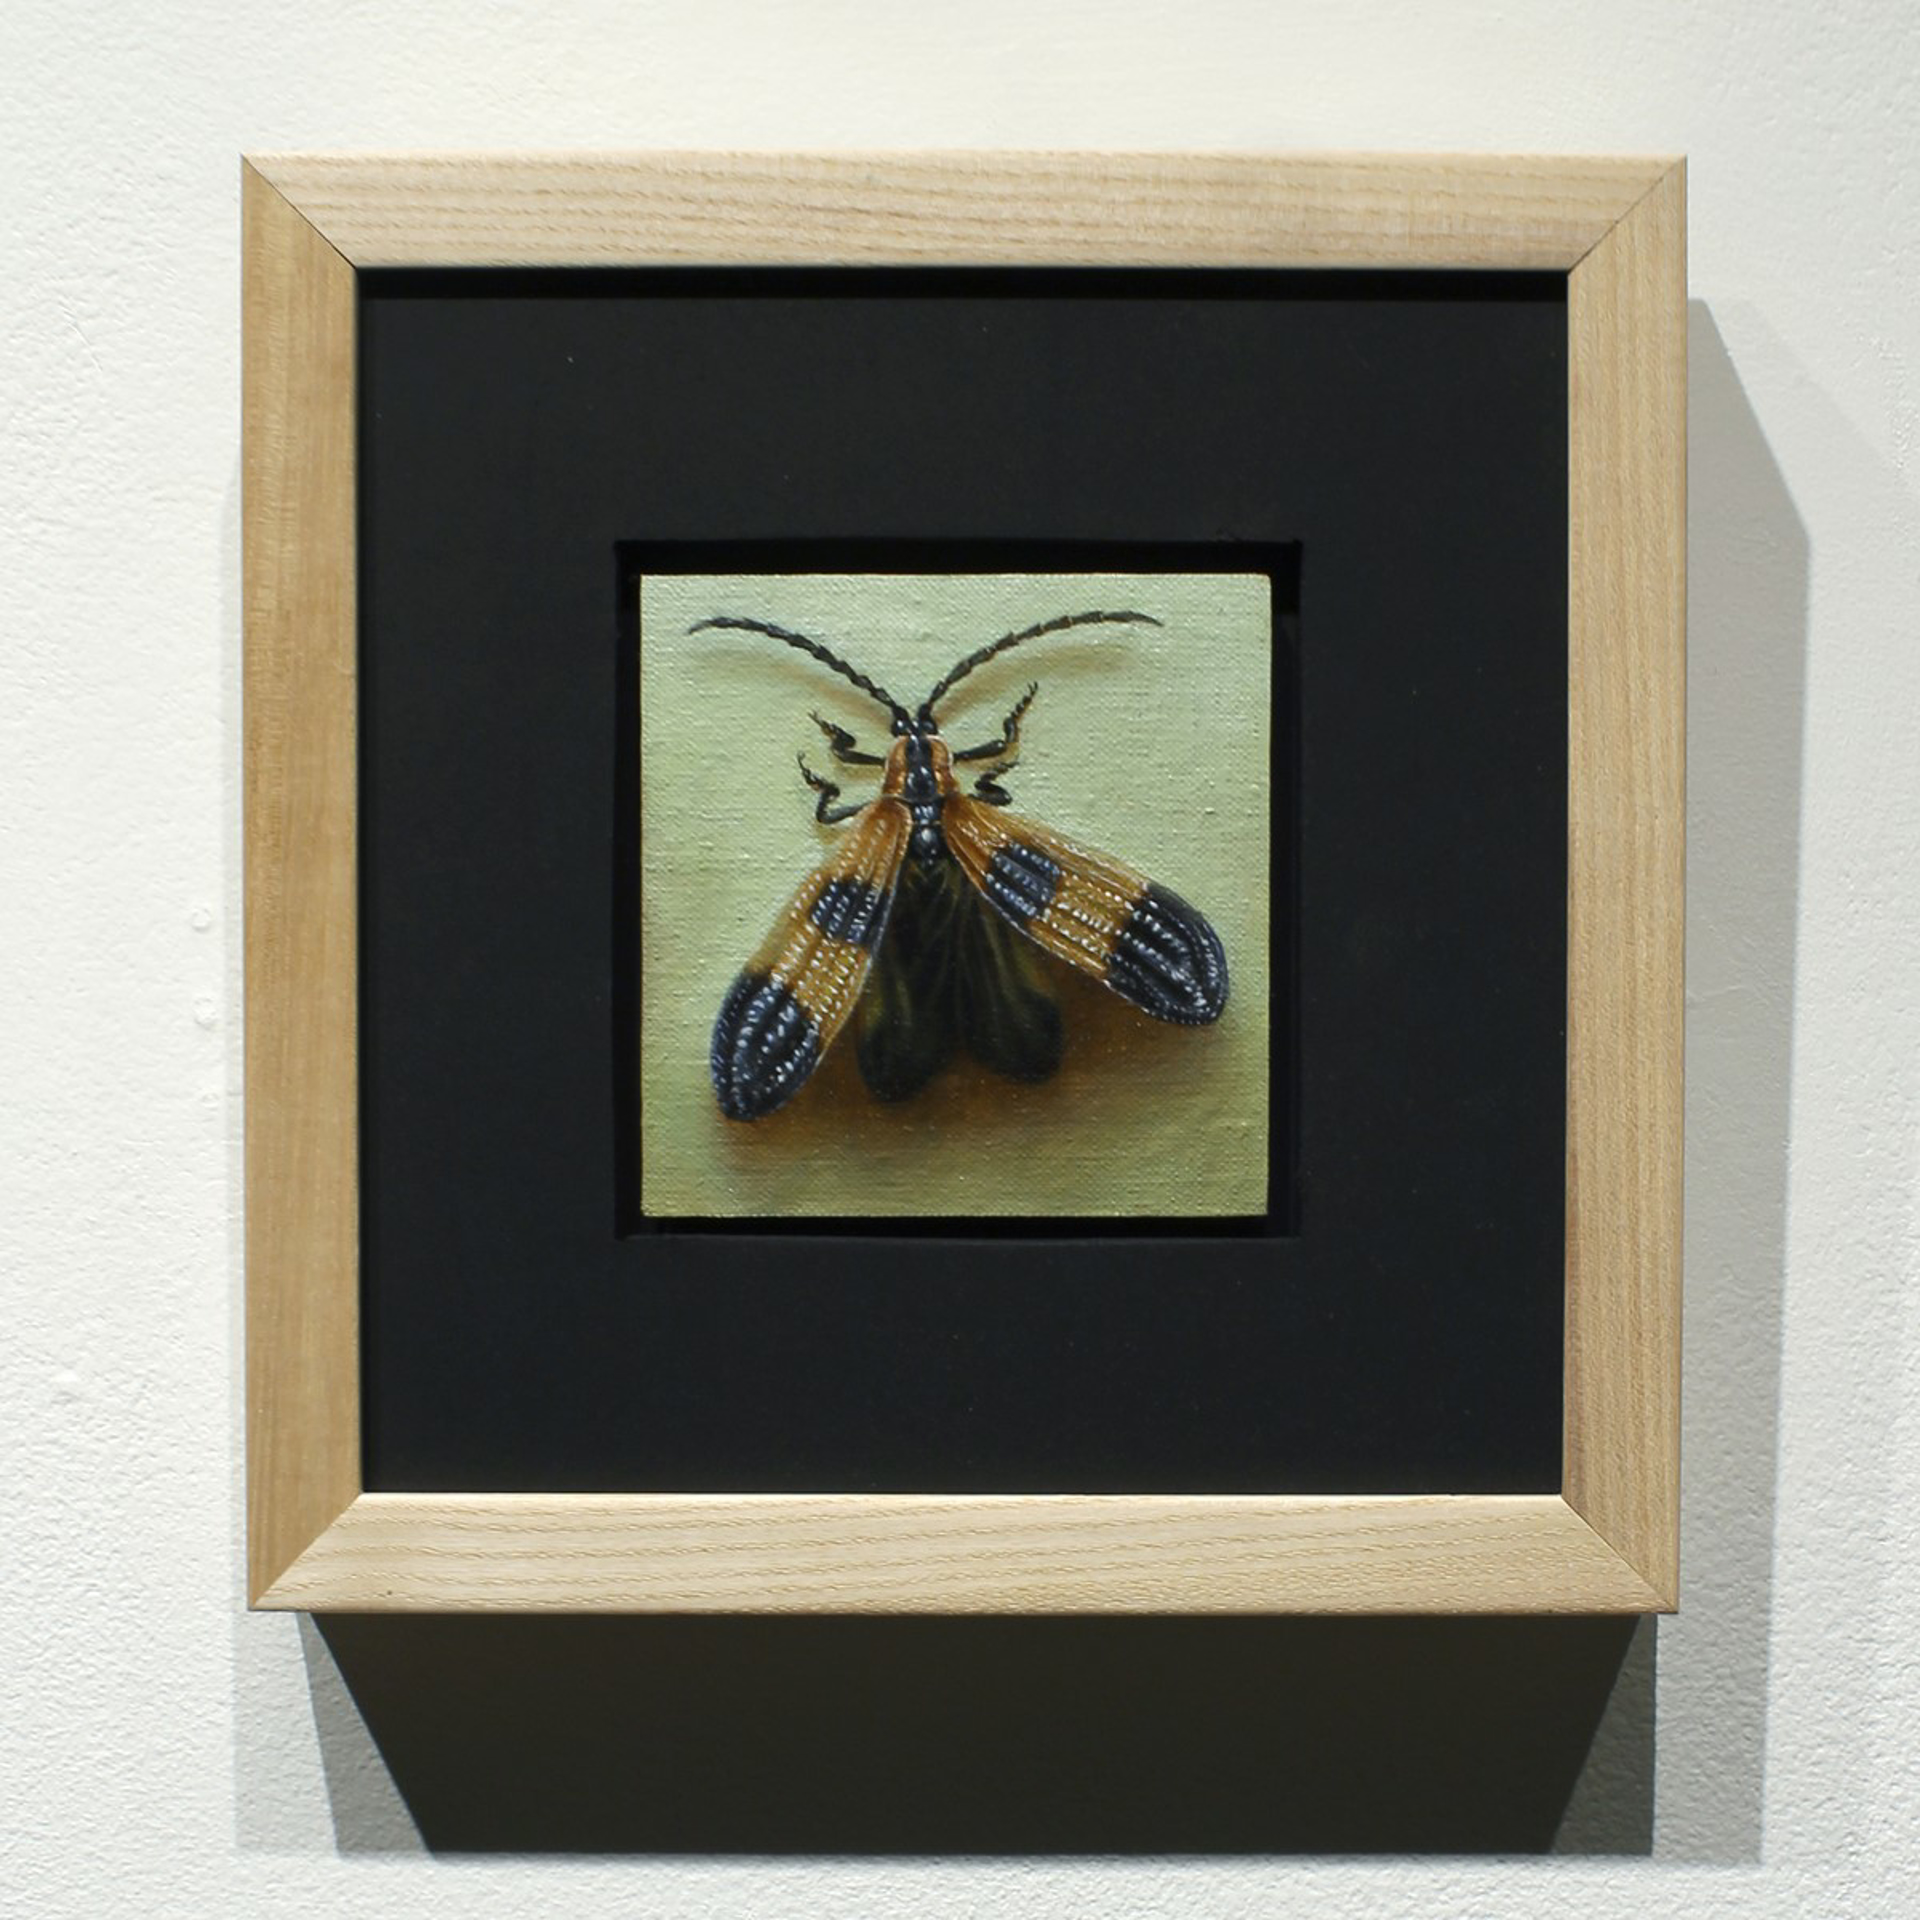 Banded Net-winged Beetle by Zane York